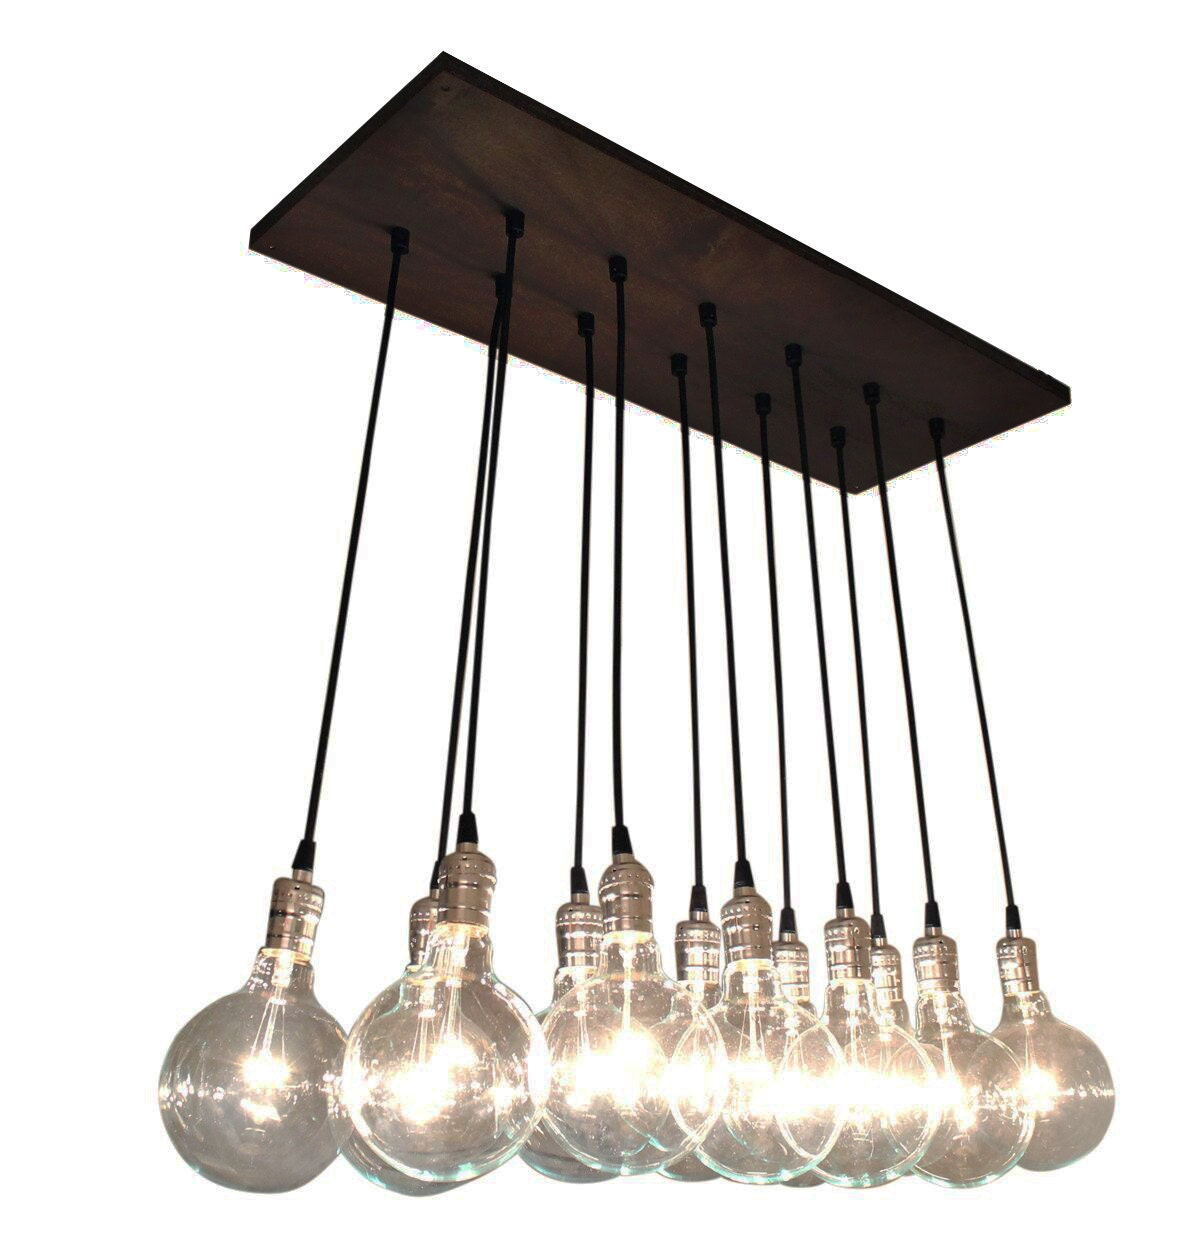 Urban chic chandelier with exposed bulbs kitchen lighting zoom arubaitofo Image collections